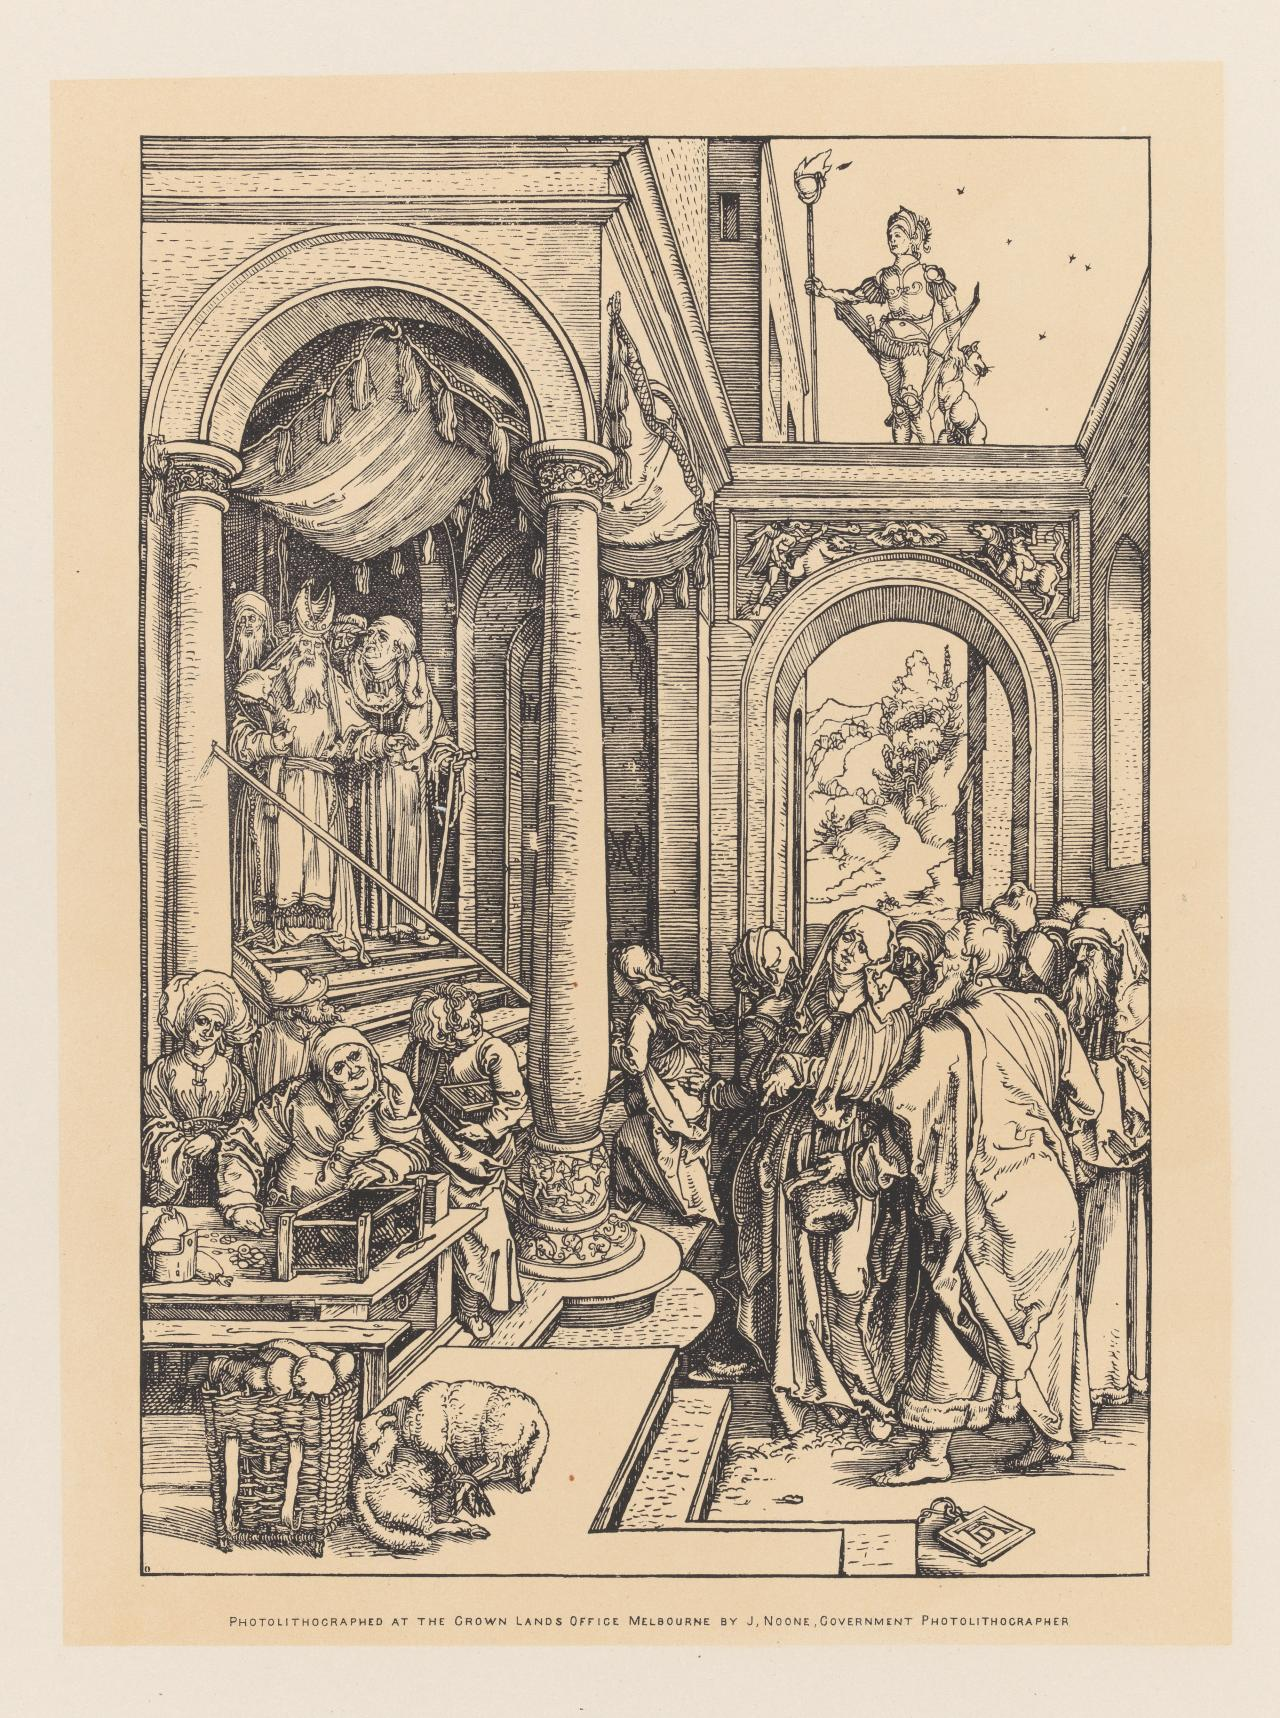 The Presentation of the Virgin in the Temple, from the series The Life of the Virgin Mary